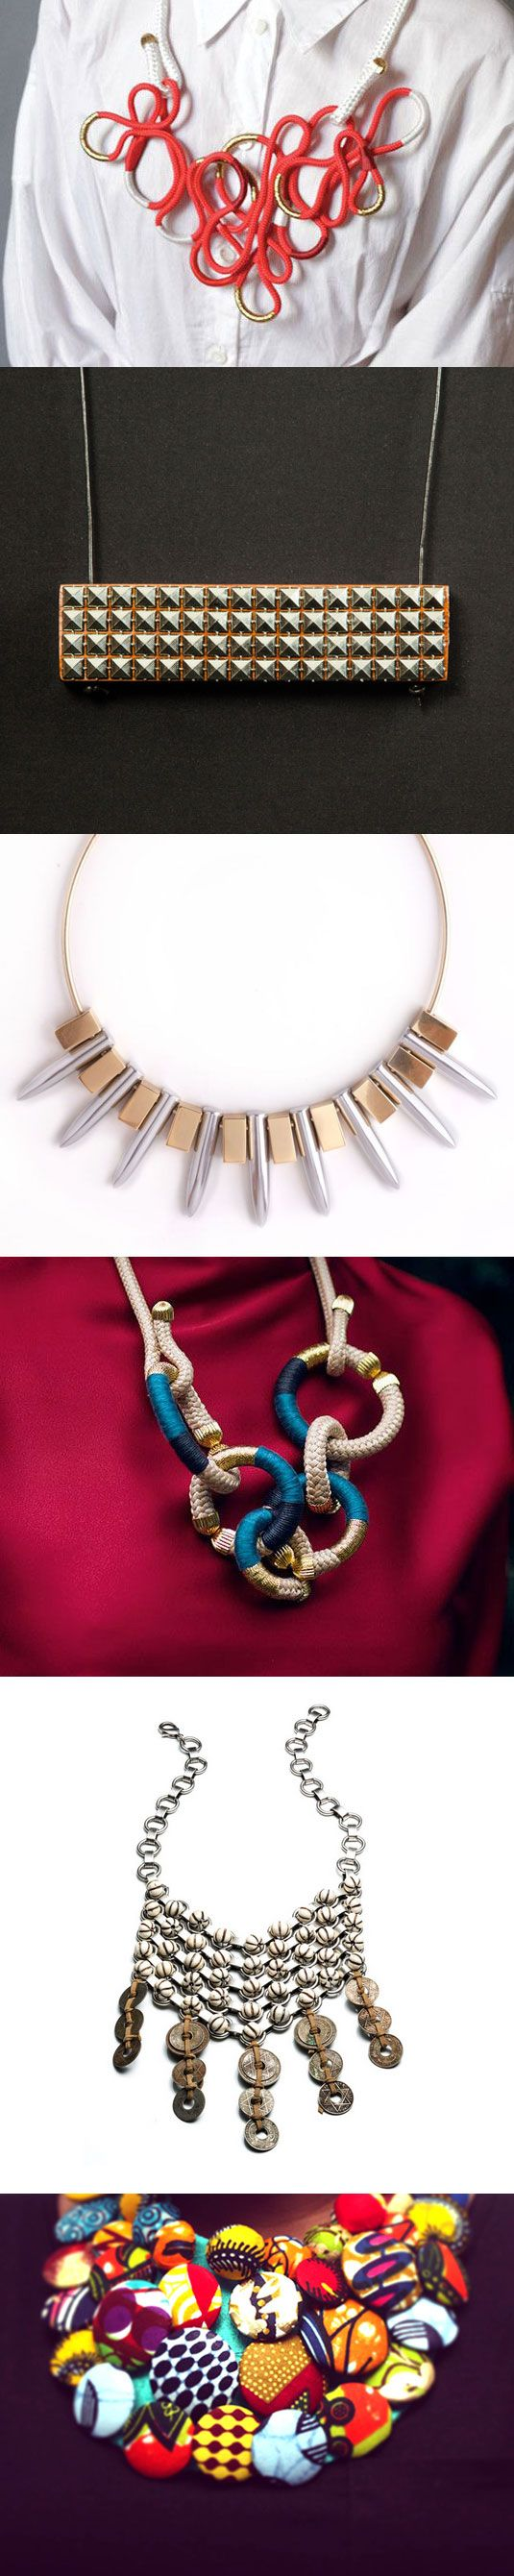 Buy african statement necklaces africanfashion accessories jewellery jewelry